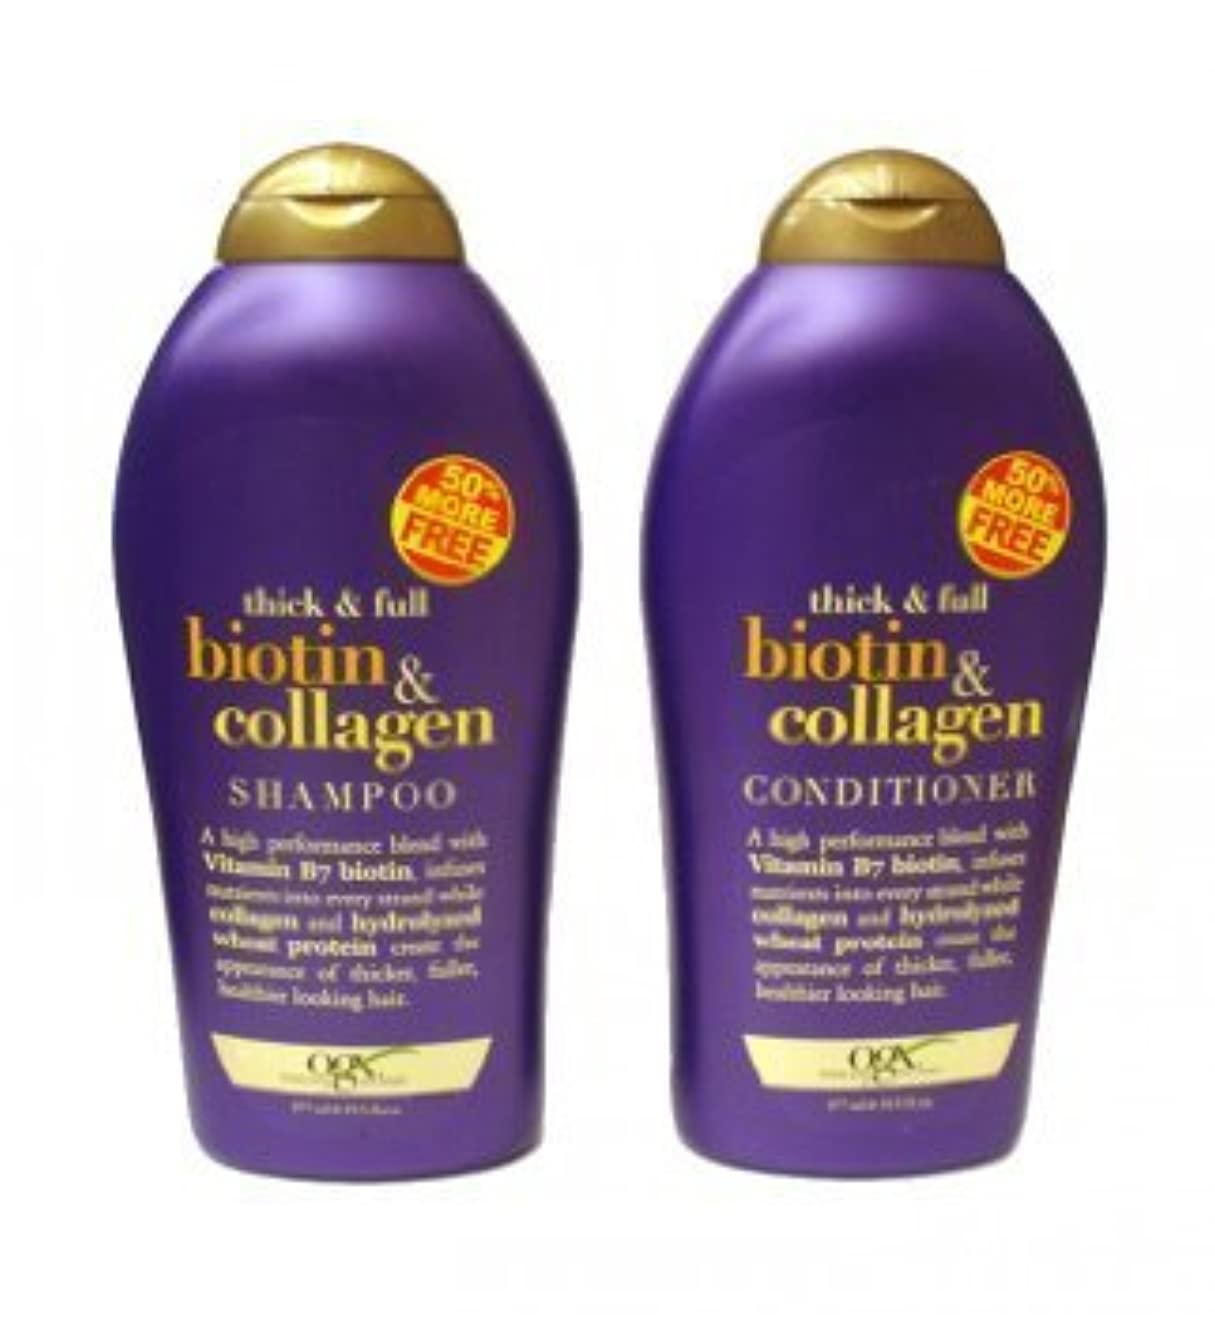 平らにする中庭おなかがすいたOGX (Thick & Full) Biotin & Collagen Shampoo 19.5oz + Conditioner 19.5oz Duo-Set [並行輸入品]